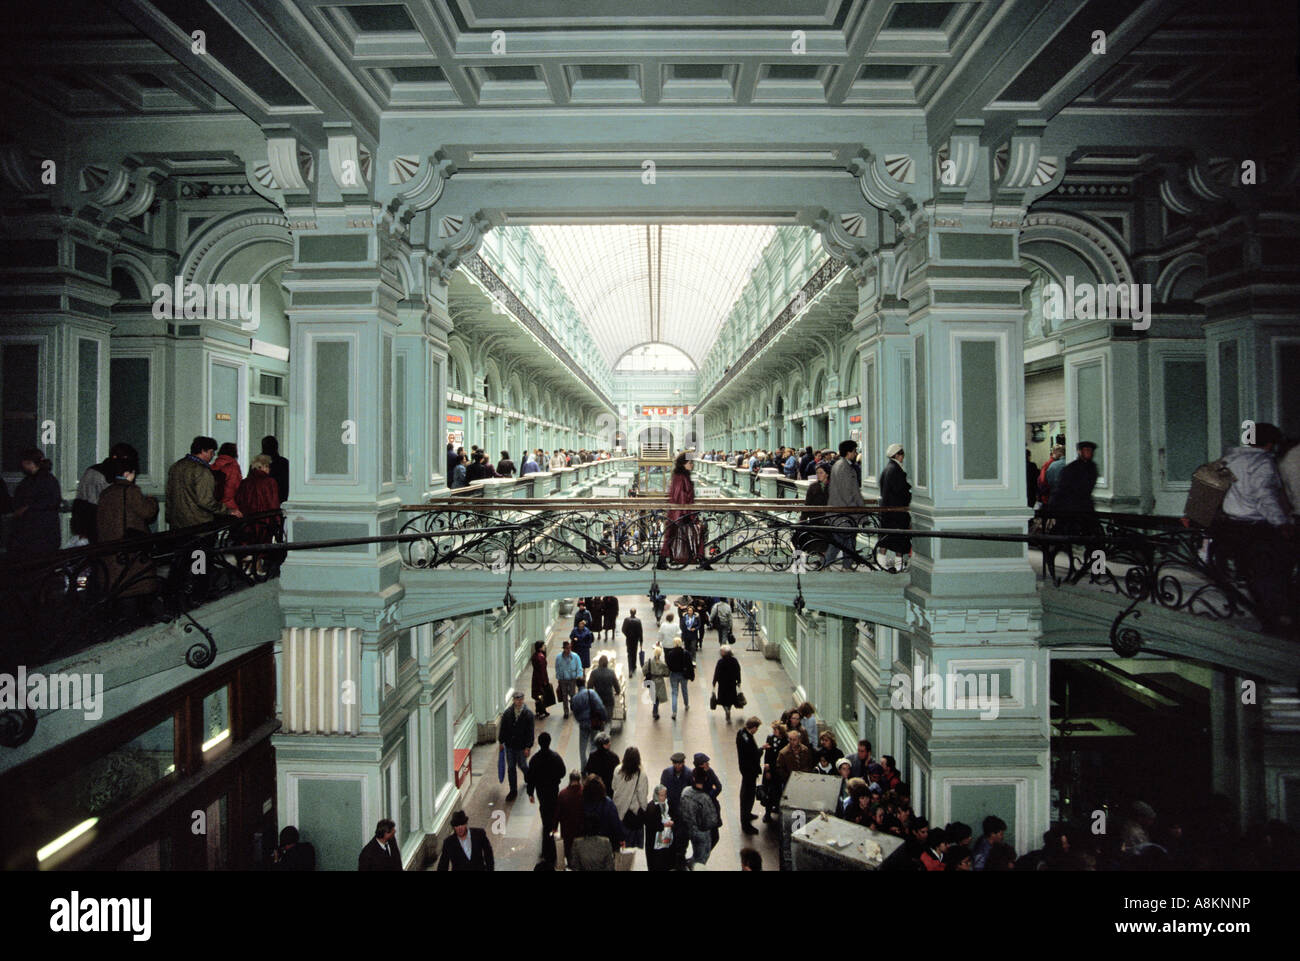 Gum department store Moscow, Russia - Stock Image